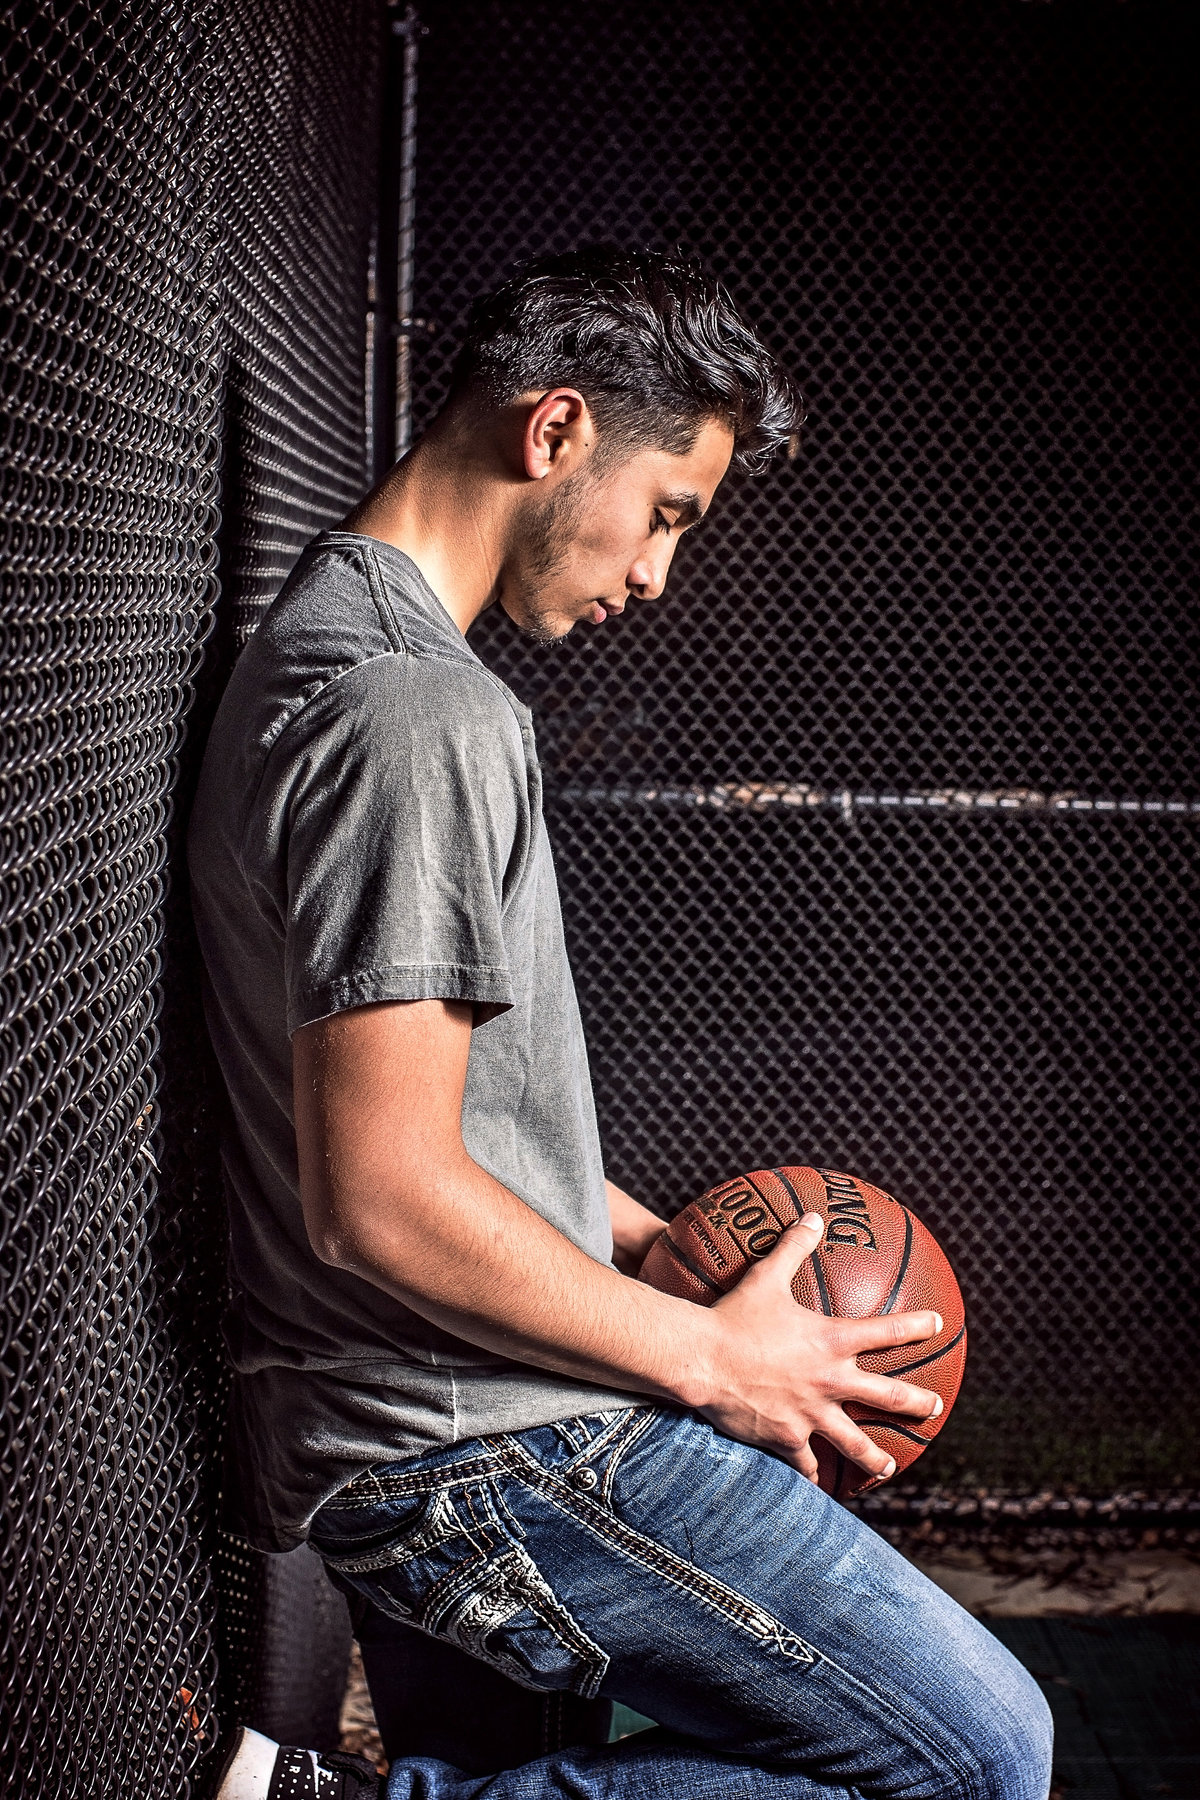 Redway-California-senior-portrait-photographer-Parky's-Pics-Photography-Humboldt-County-basketball-nighhttime1.jpg